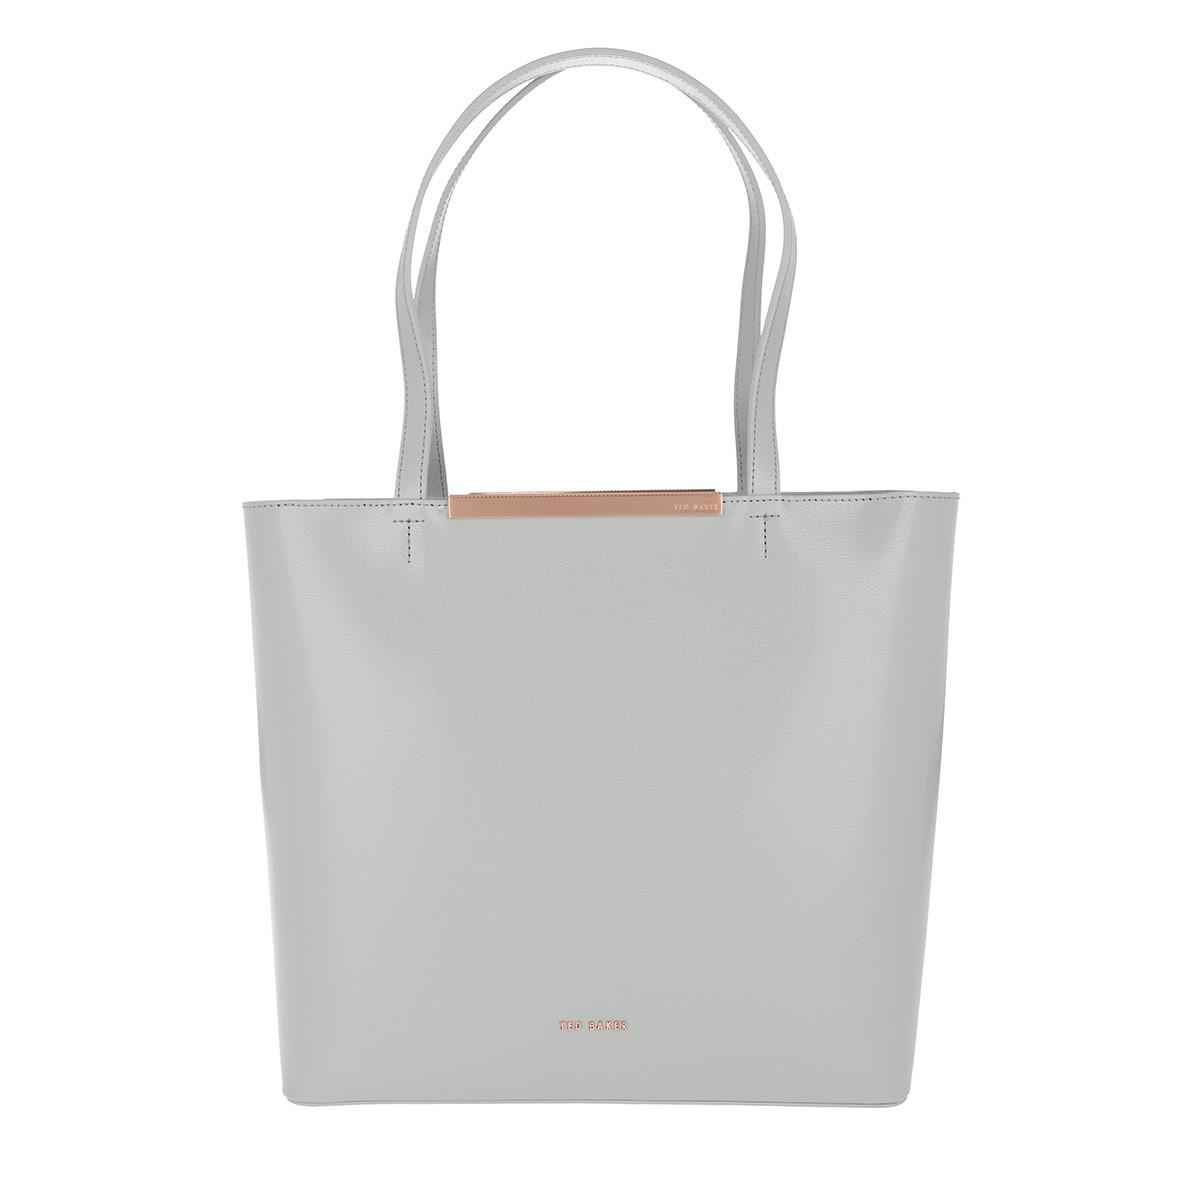 a7cf37c6a9f24d Ted Baker Melisa Core Large Leather Shopper Grey in Gray - Lyst